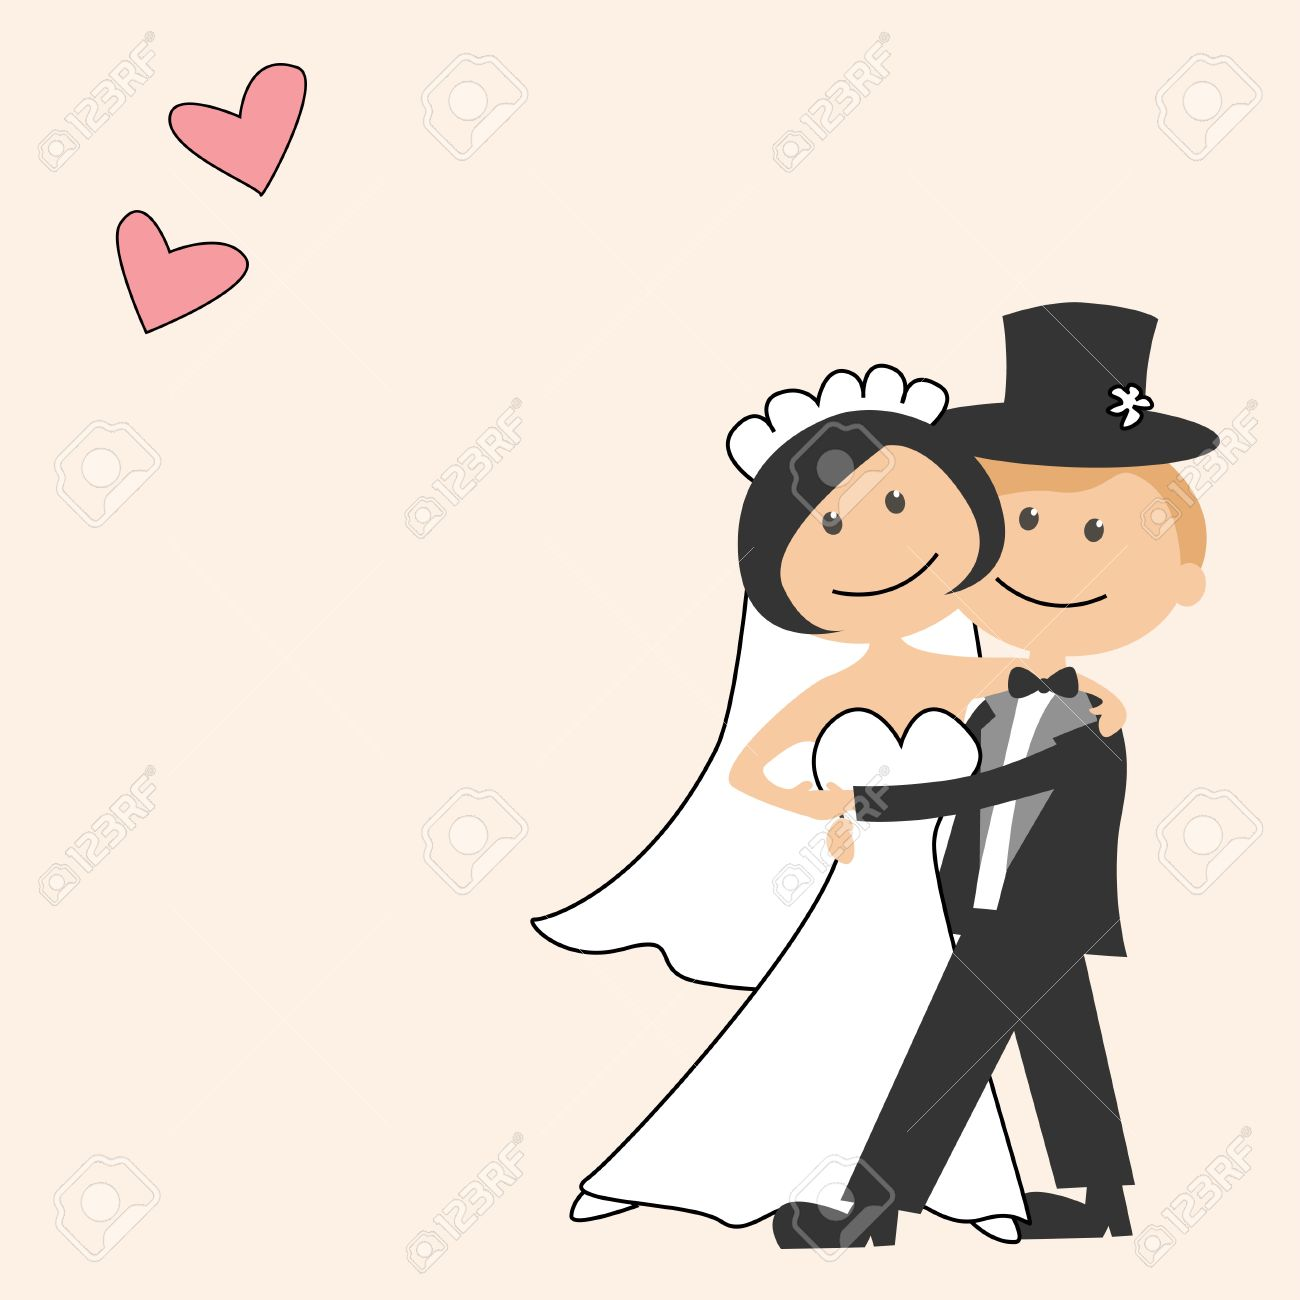 Cartoon Bride And Groom Wedding Invitations Bride And Groom Cartoon